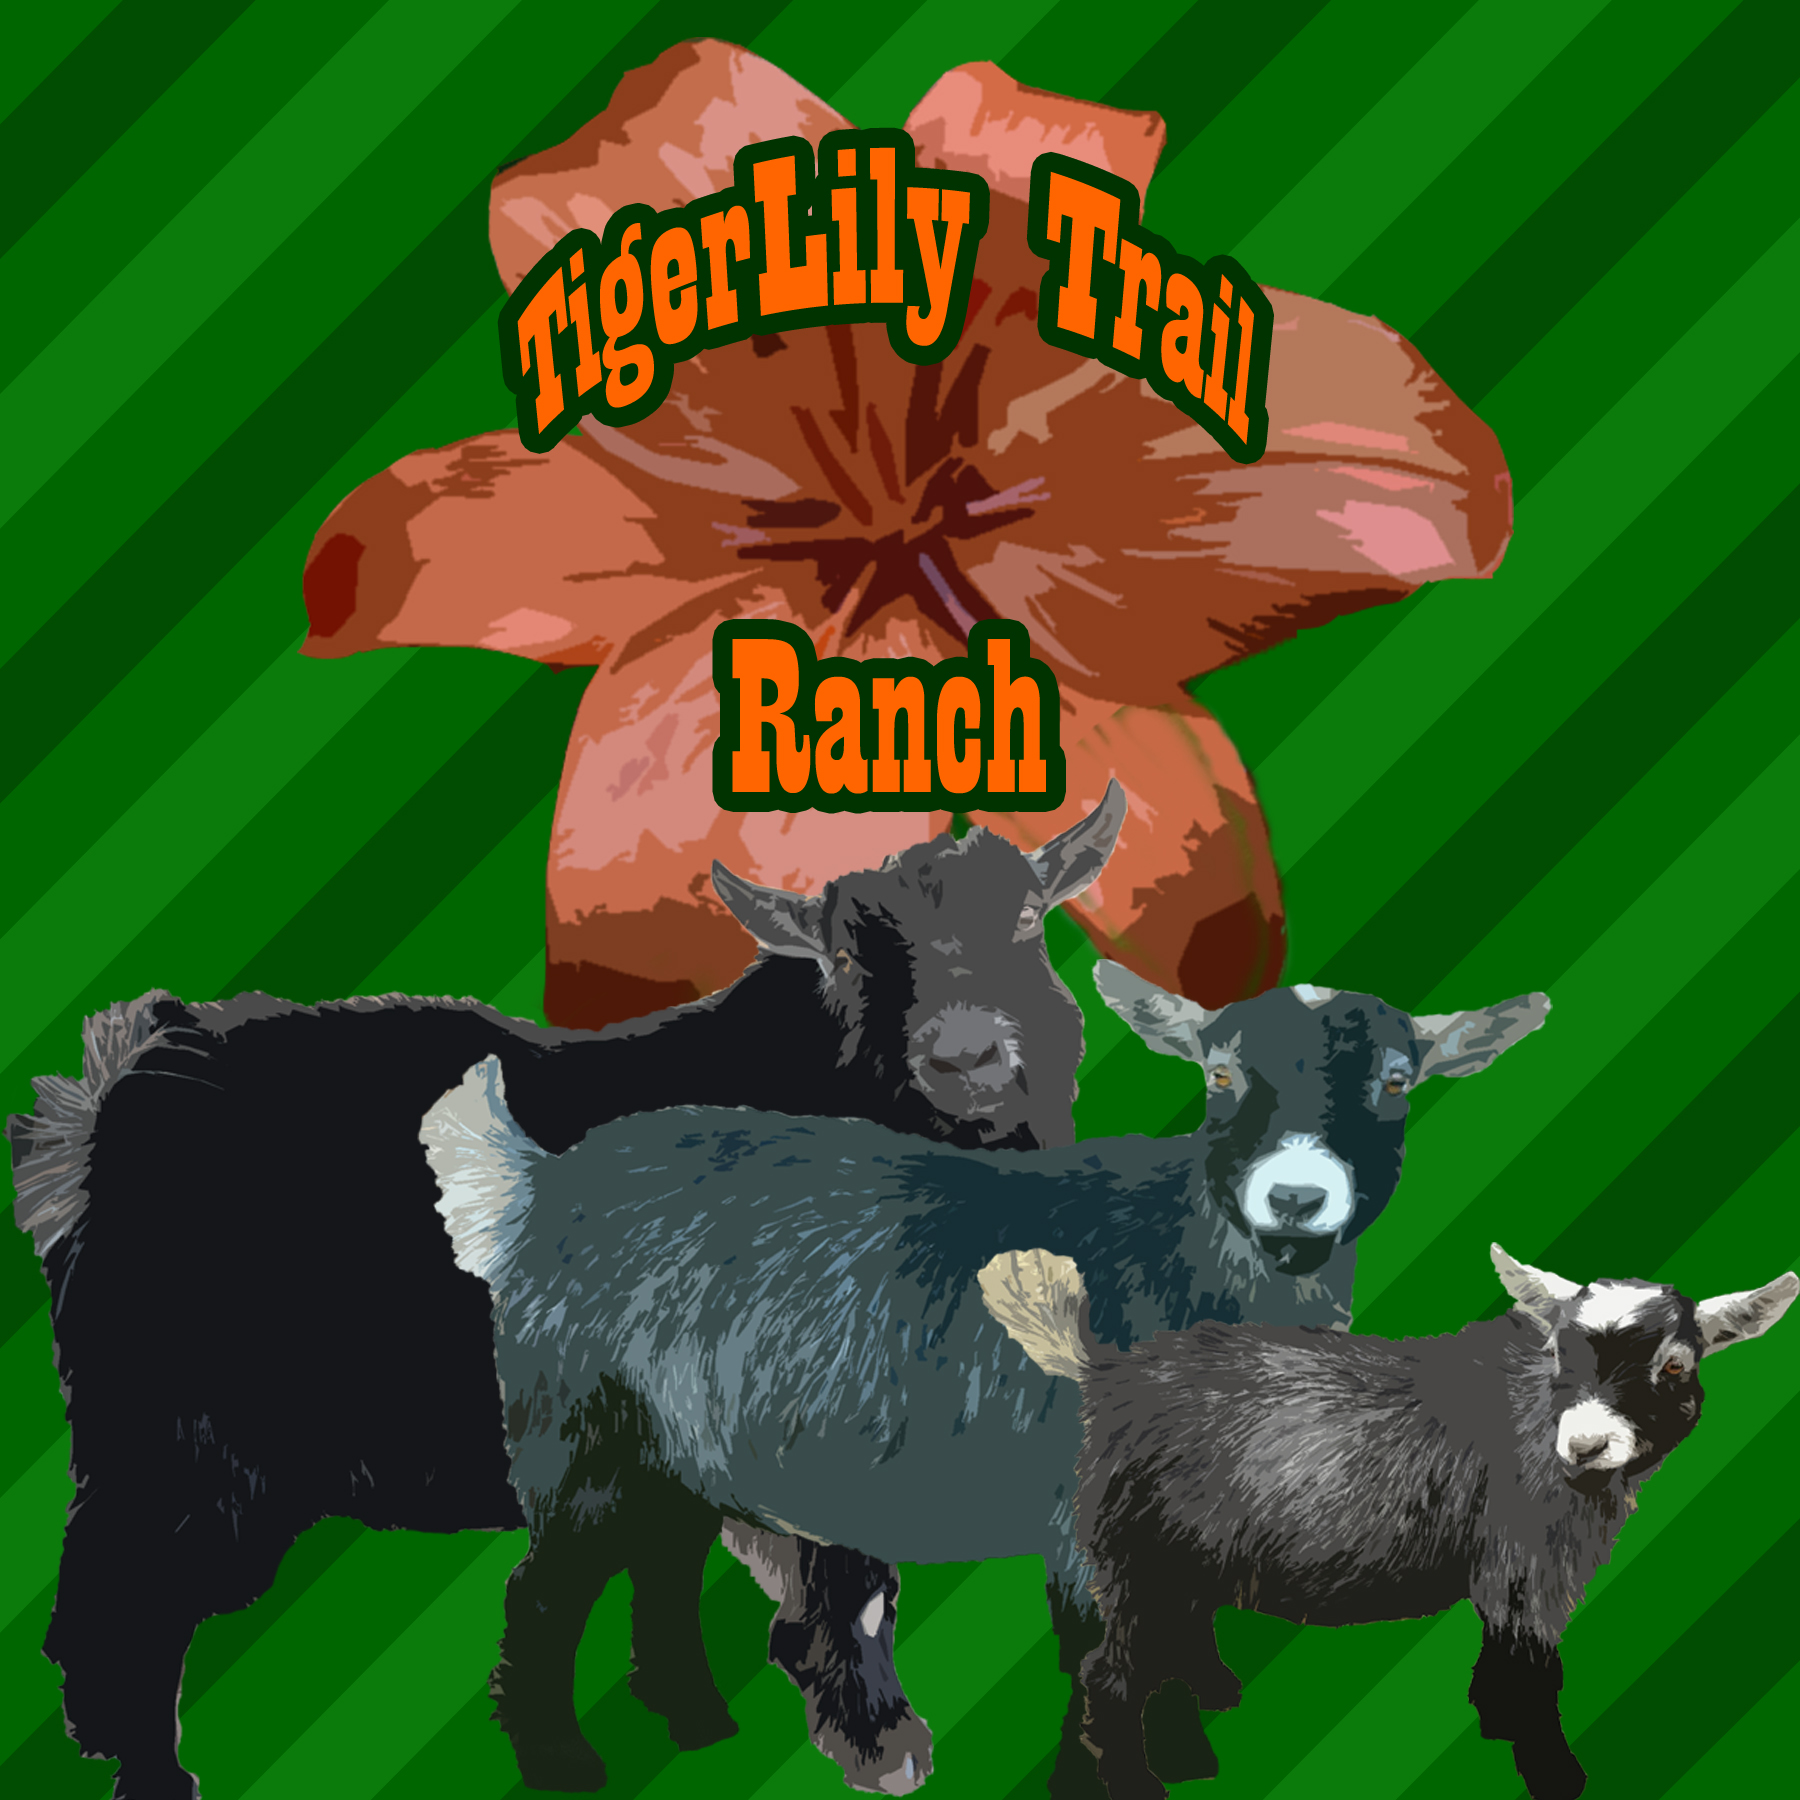 TigerLily Trail Ranch